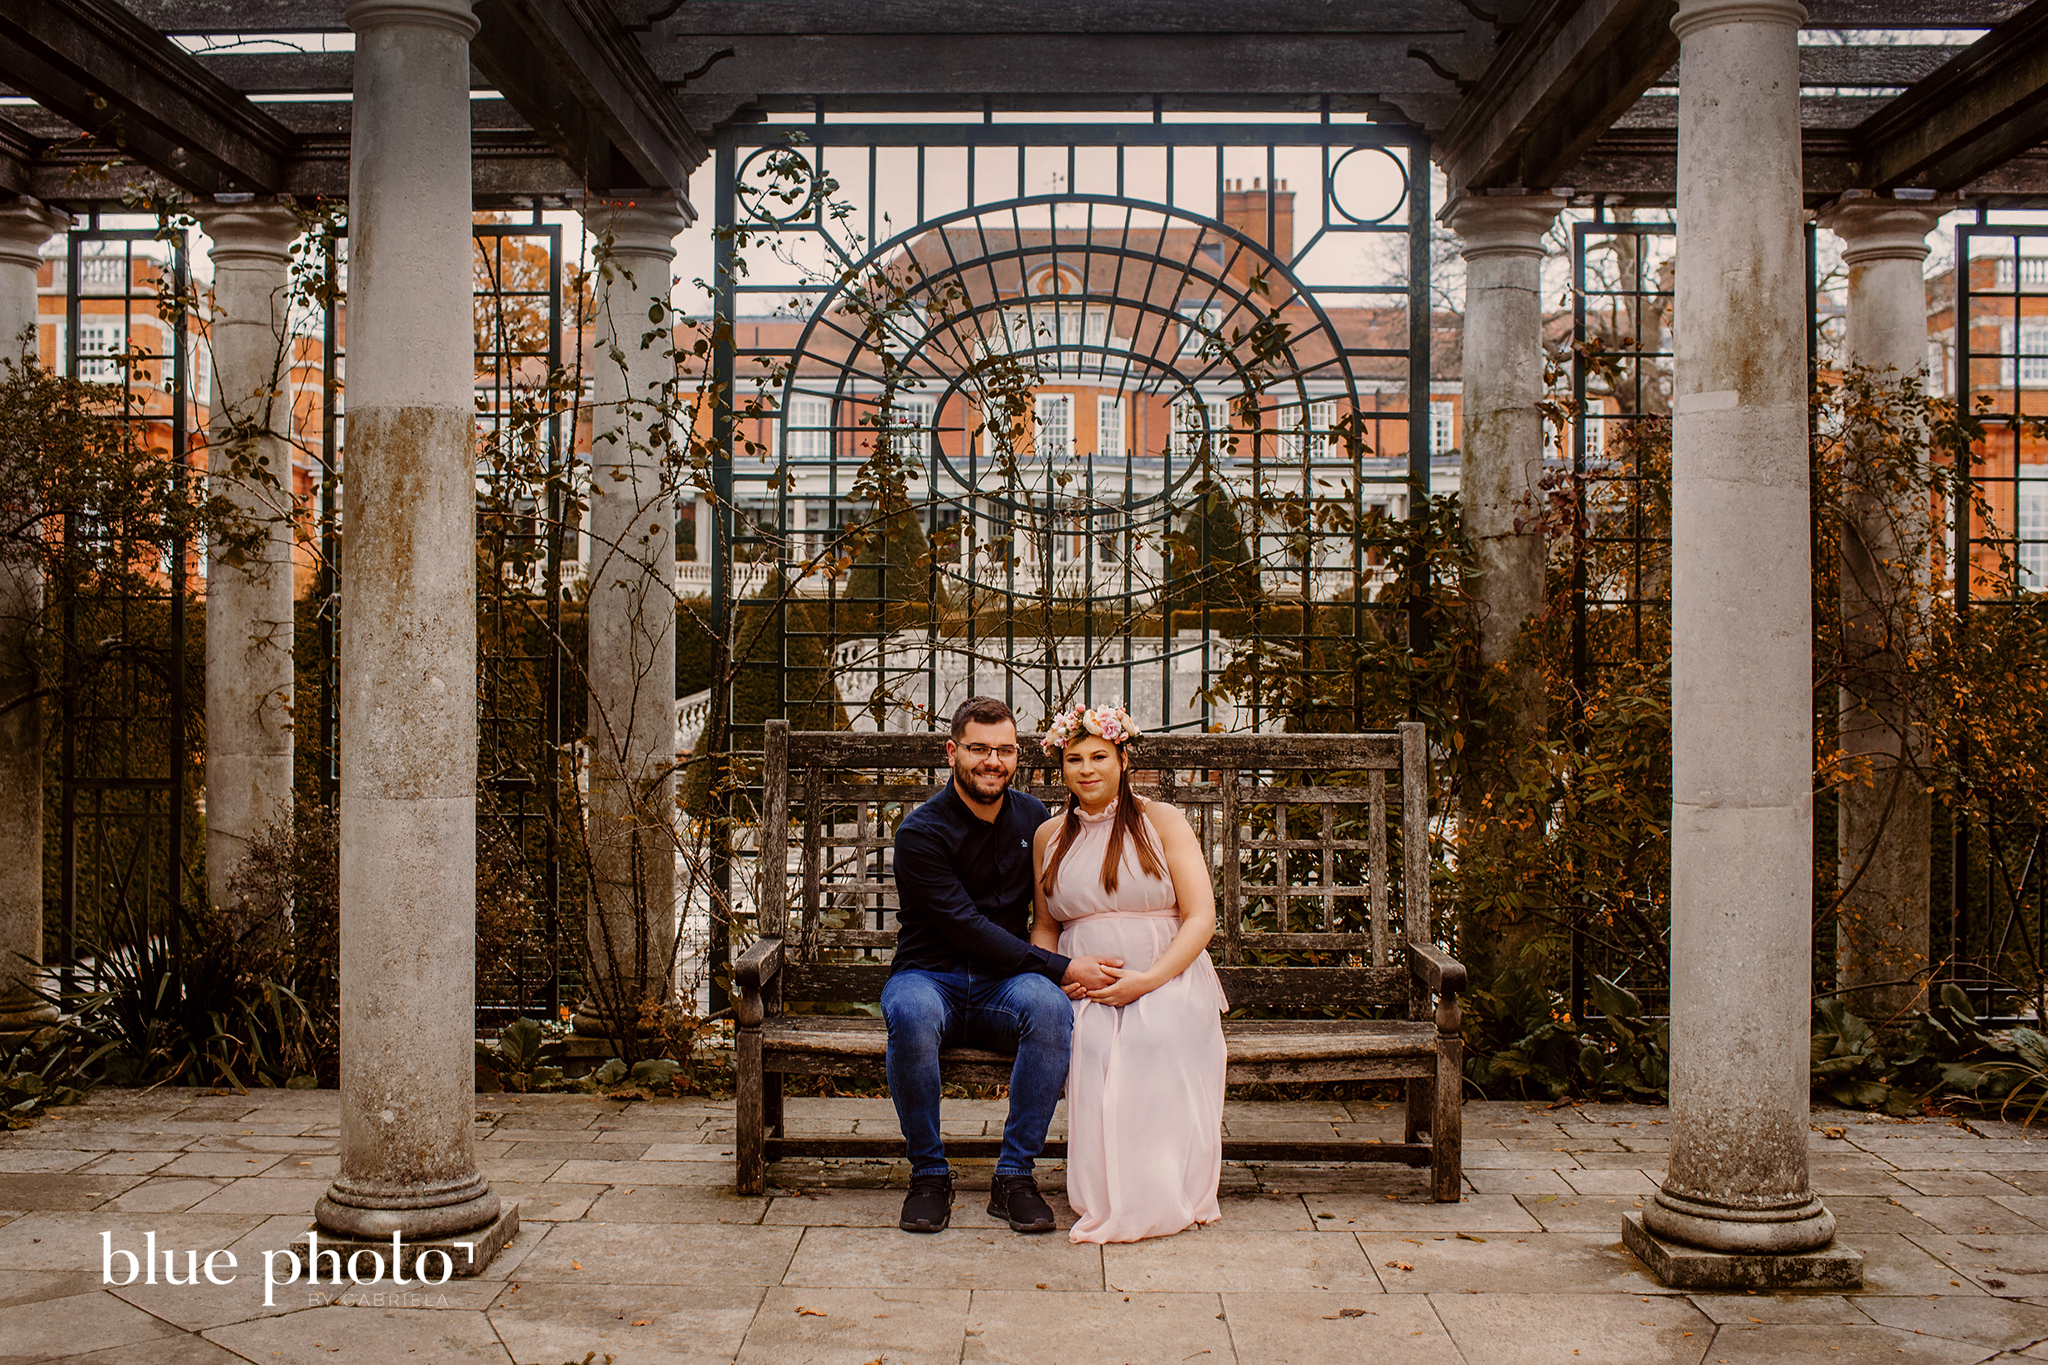 Justyna and Rafal, maternity session in North London, Hill Garden and Pergola.